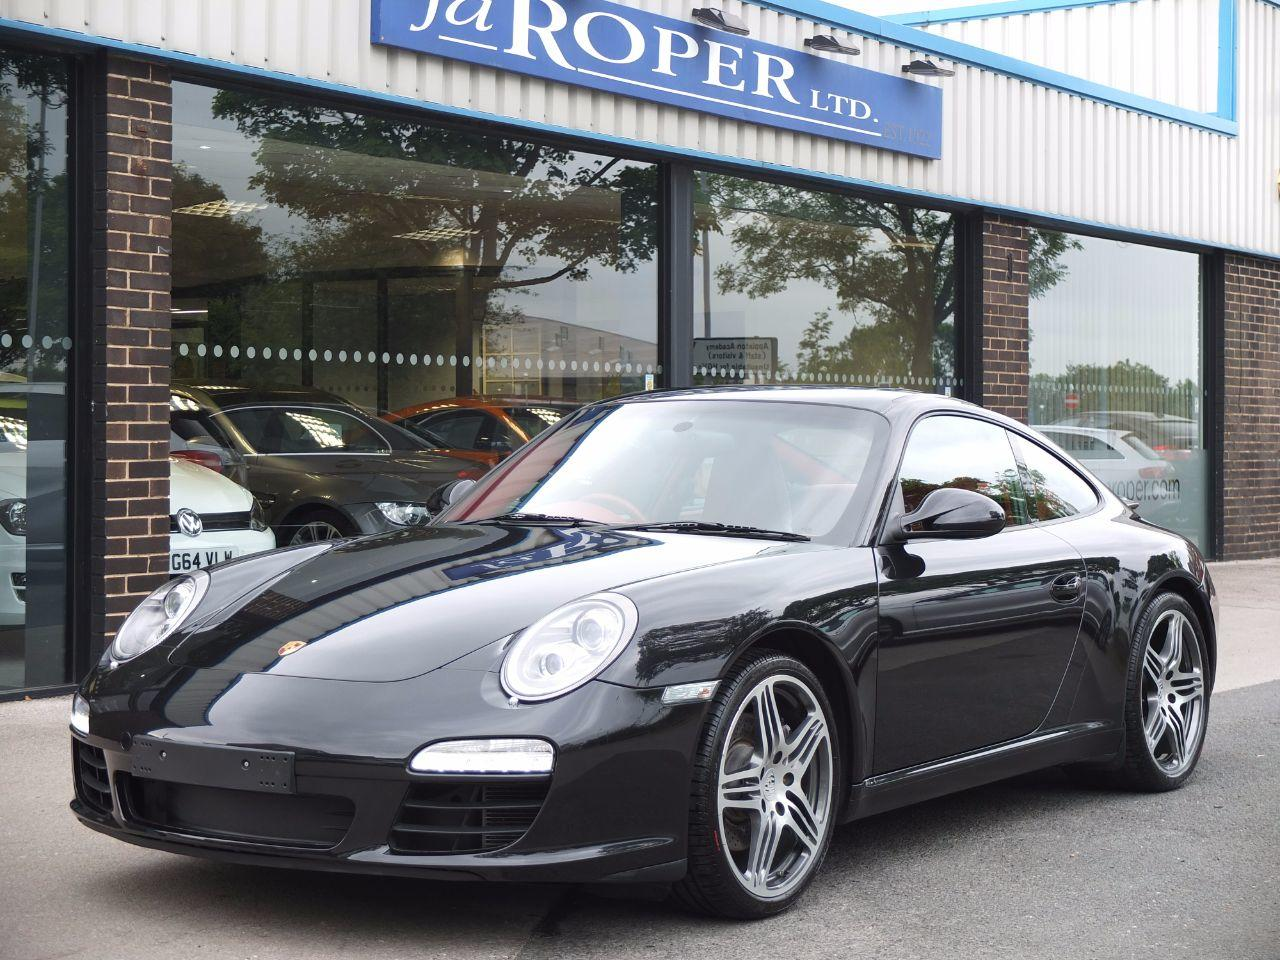 Porsche 911 997 Gen II Coupe 3.6 Carrera PDK +++Spec Coupe Petrol Basalt Black MetallicPorsche 911 997 Gen II Coupe 3.6 Carrera PDK +++Spec Coupe Petrol Basalt Black Metallic at fa Roper Ltd Bradford